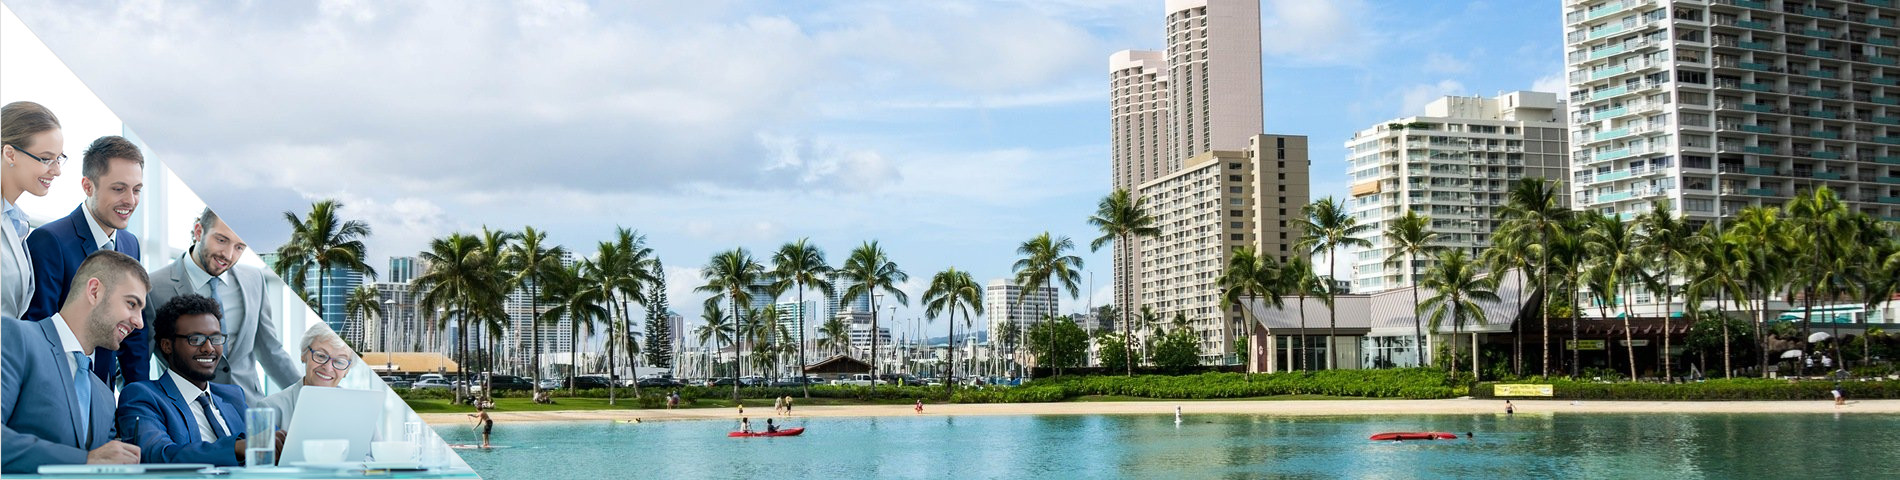 Honolulu - Business en Groupe